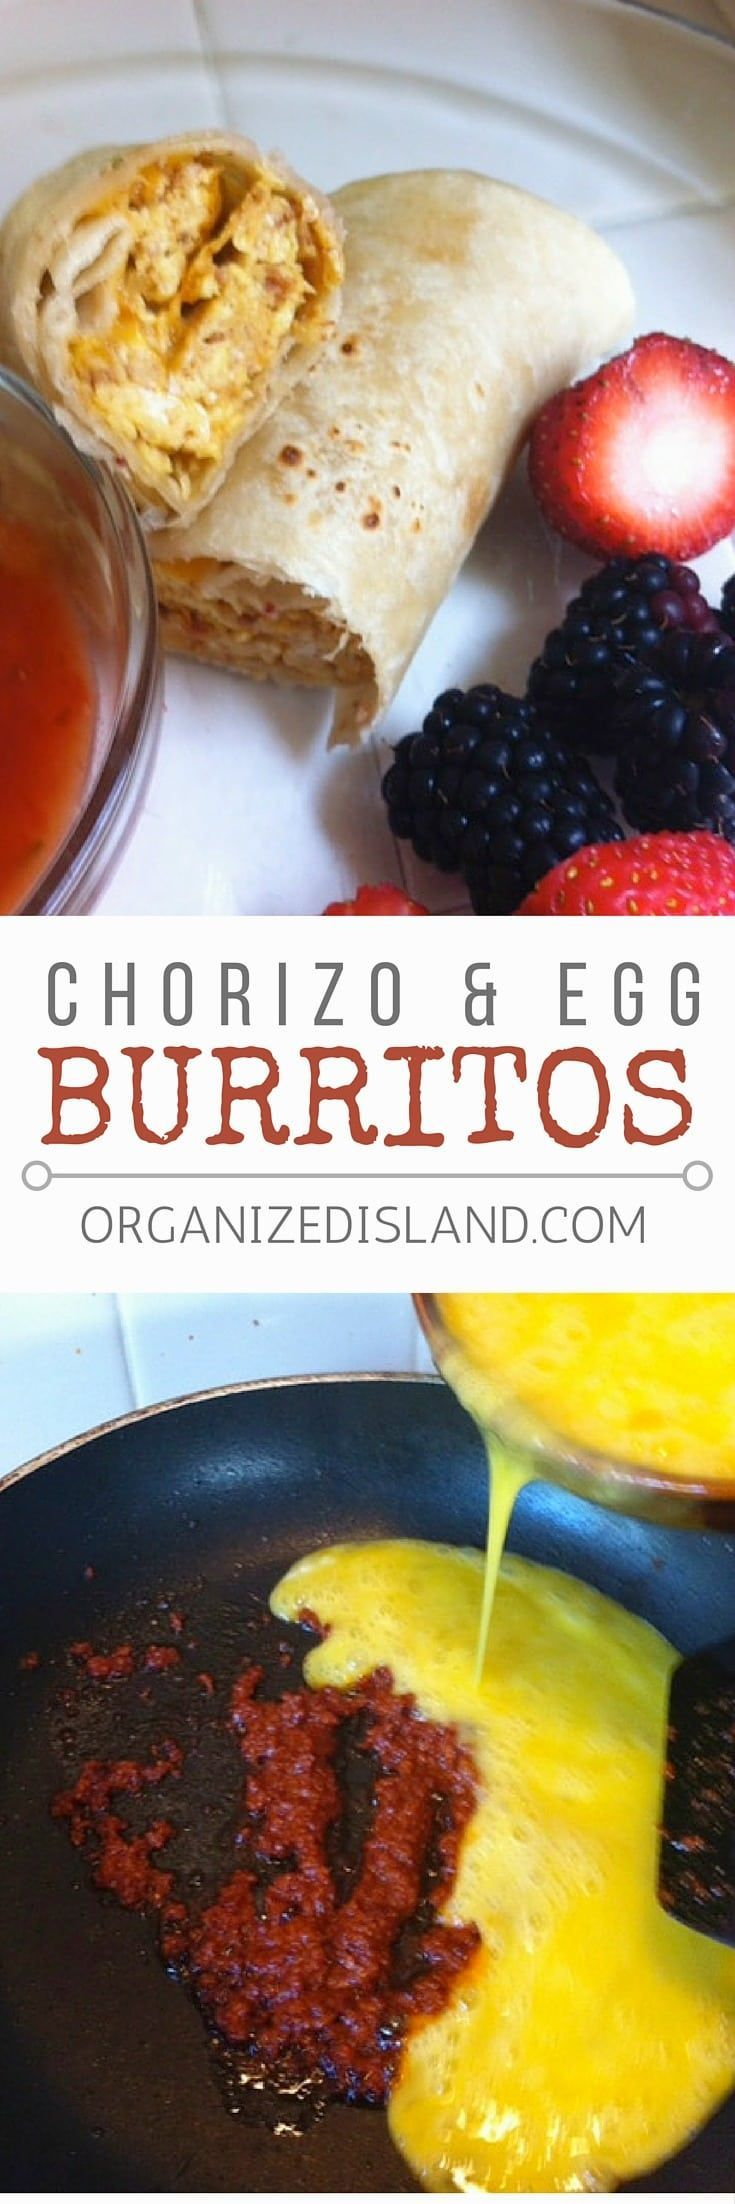 These easy chorizo and egg burritos are delicious and so easy. You can make ahead and keep in refrigerator too!                  #chorizo #egg #eggs #burrito #recipe #burritos #breakfast #recipes #burrritos #breakfastburritos #makeahead  via @OCRaquel #chorizobreakfastrecipes